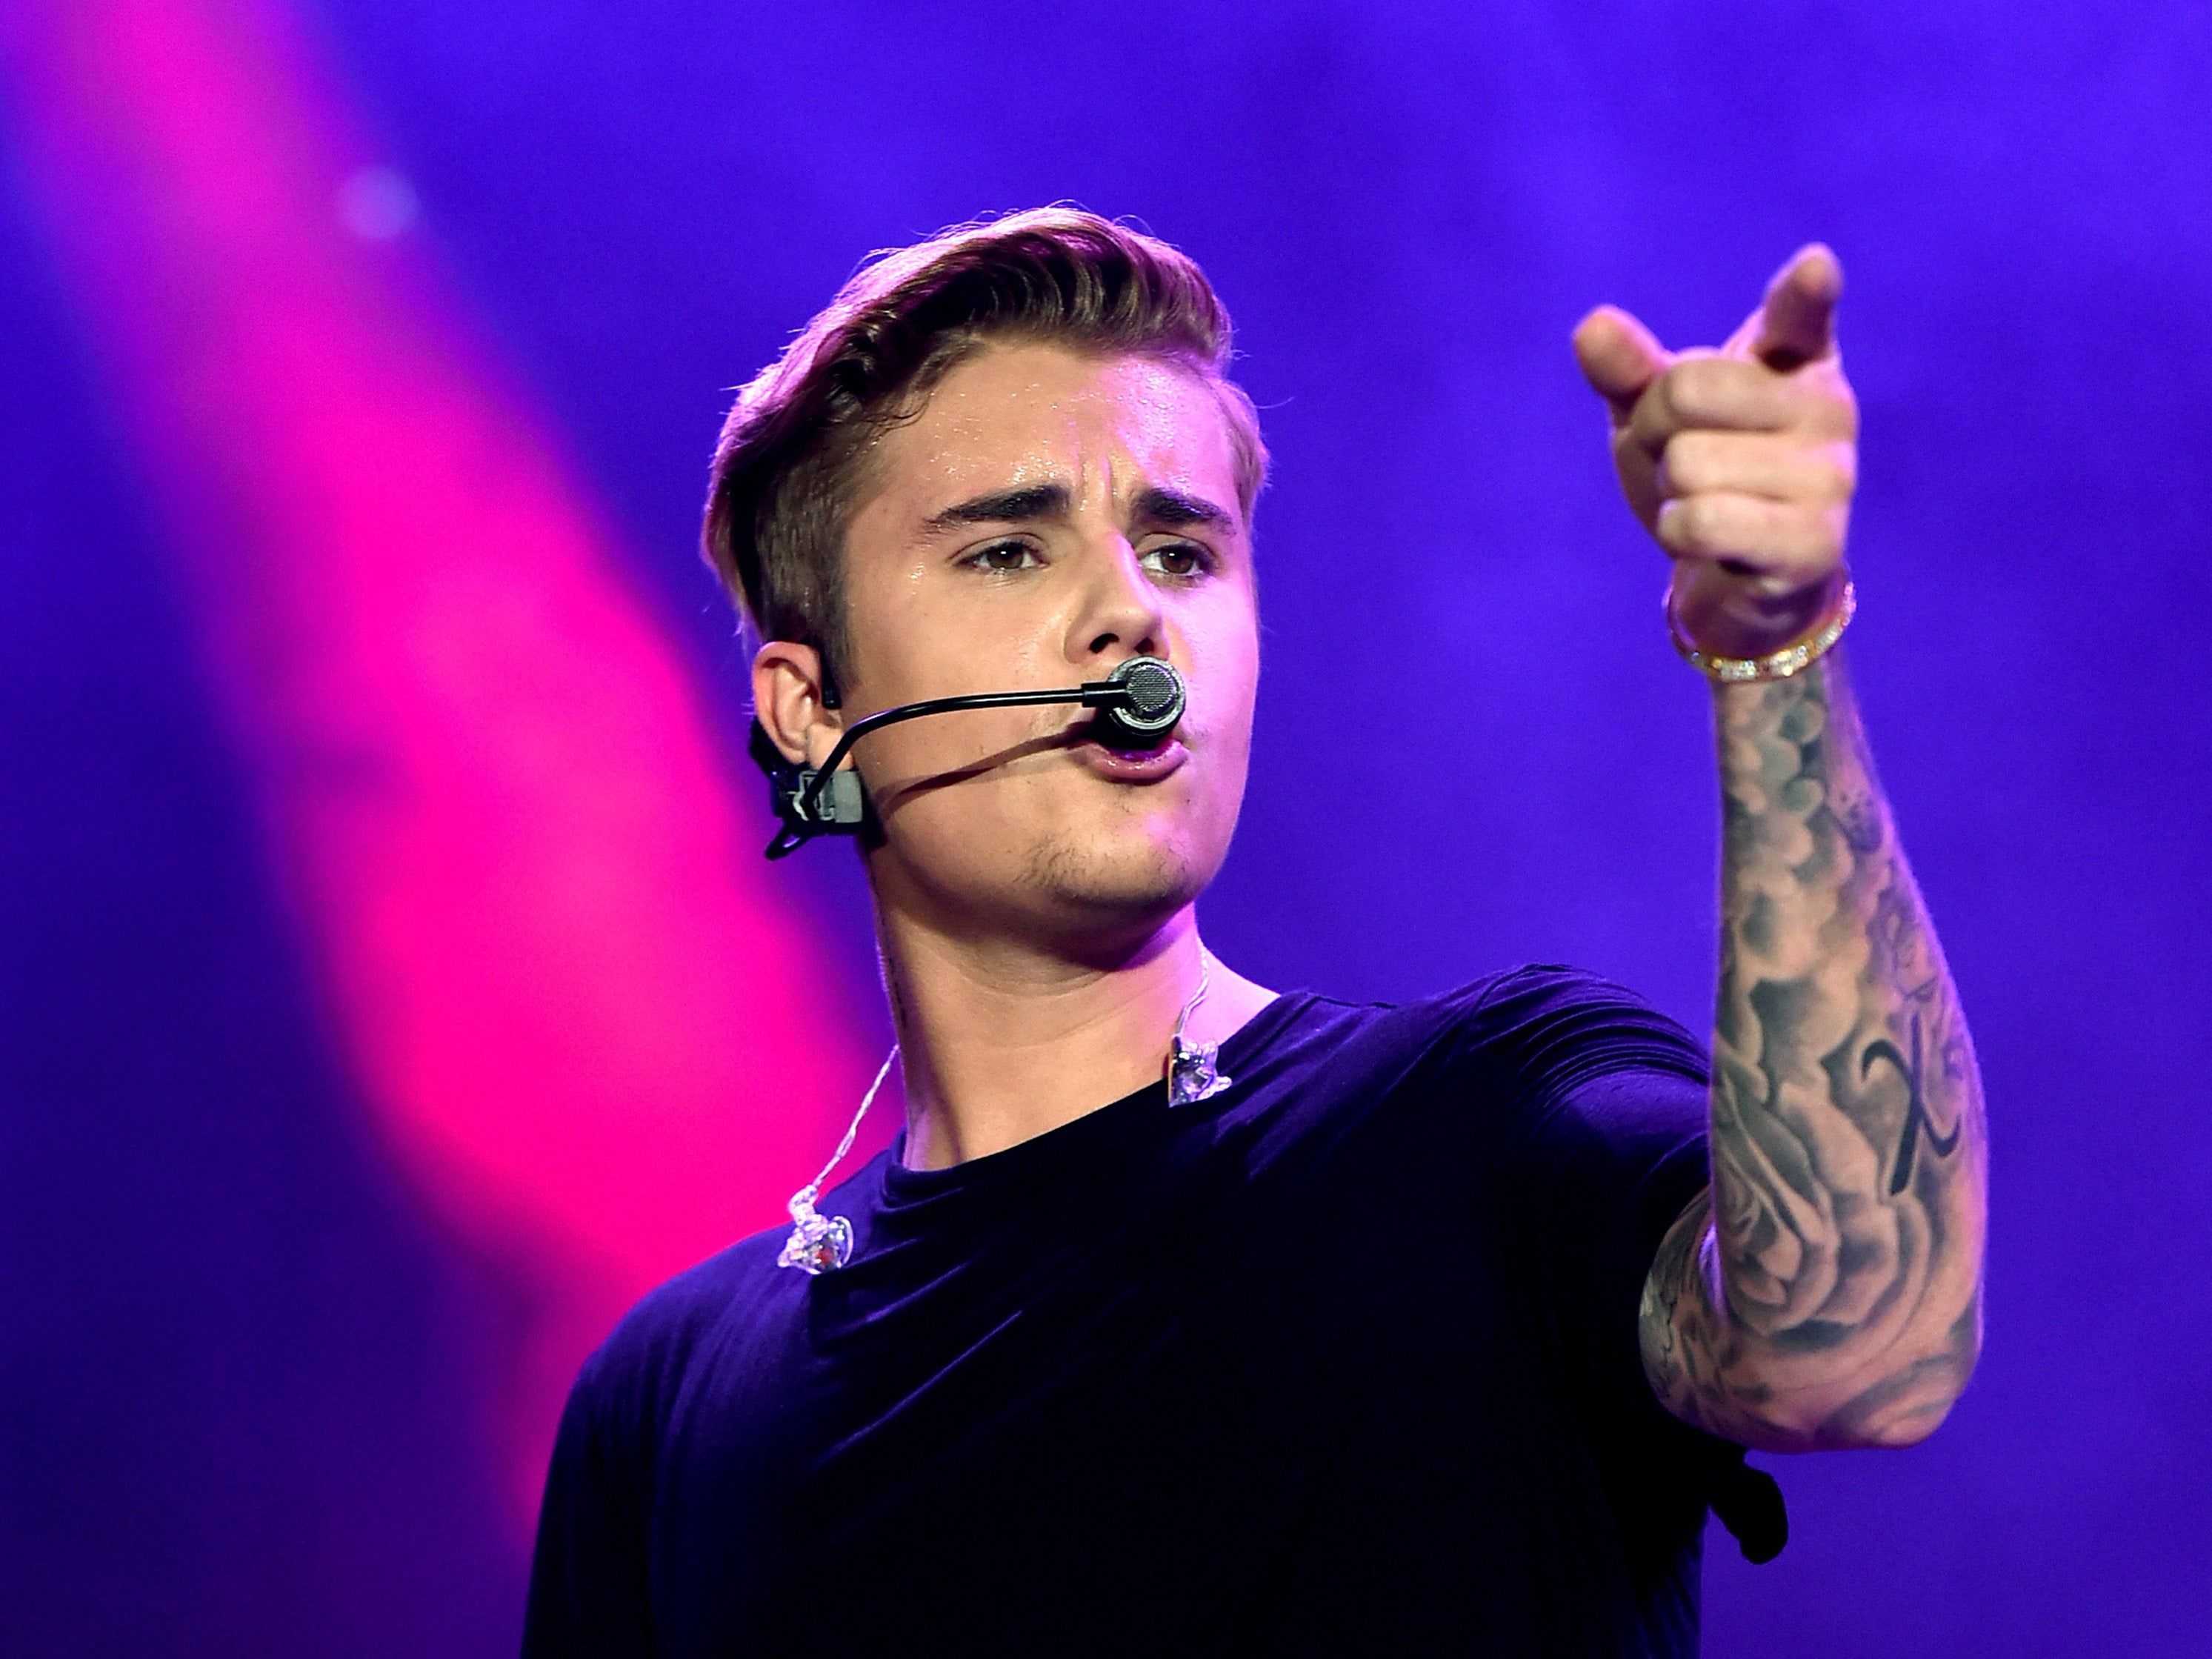 Justin Bieber Purpose 2016 world tour dates for UK announced The